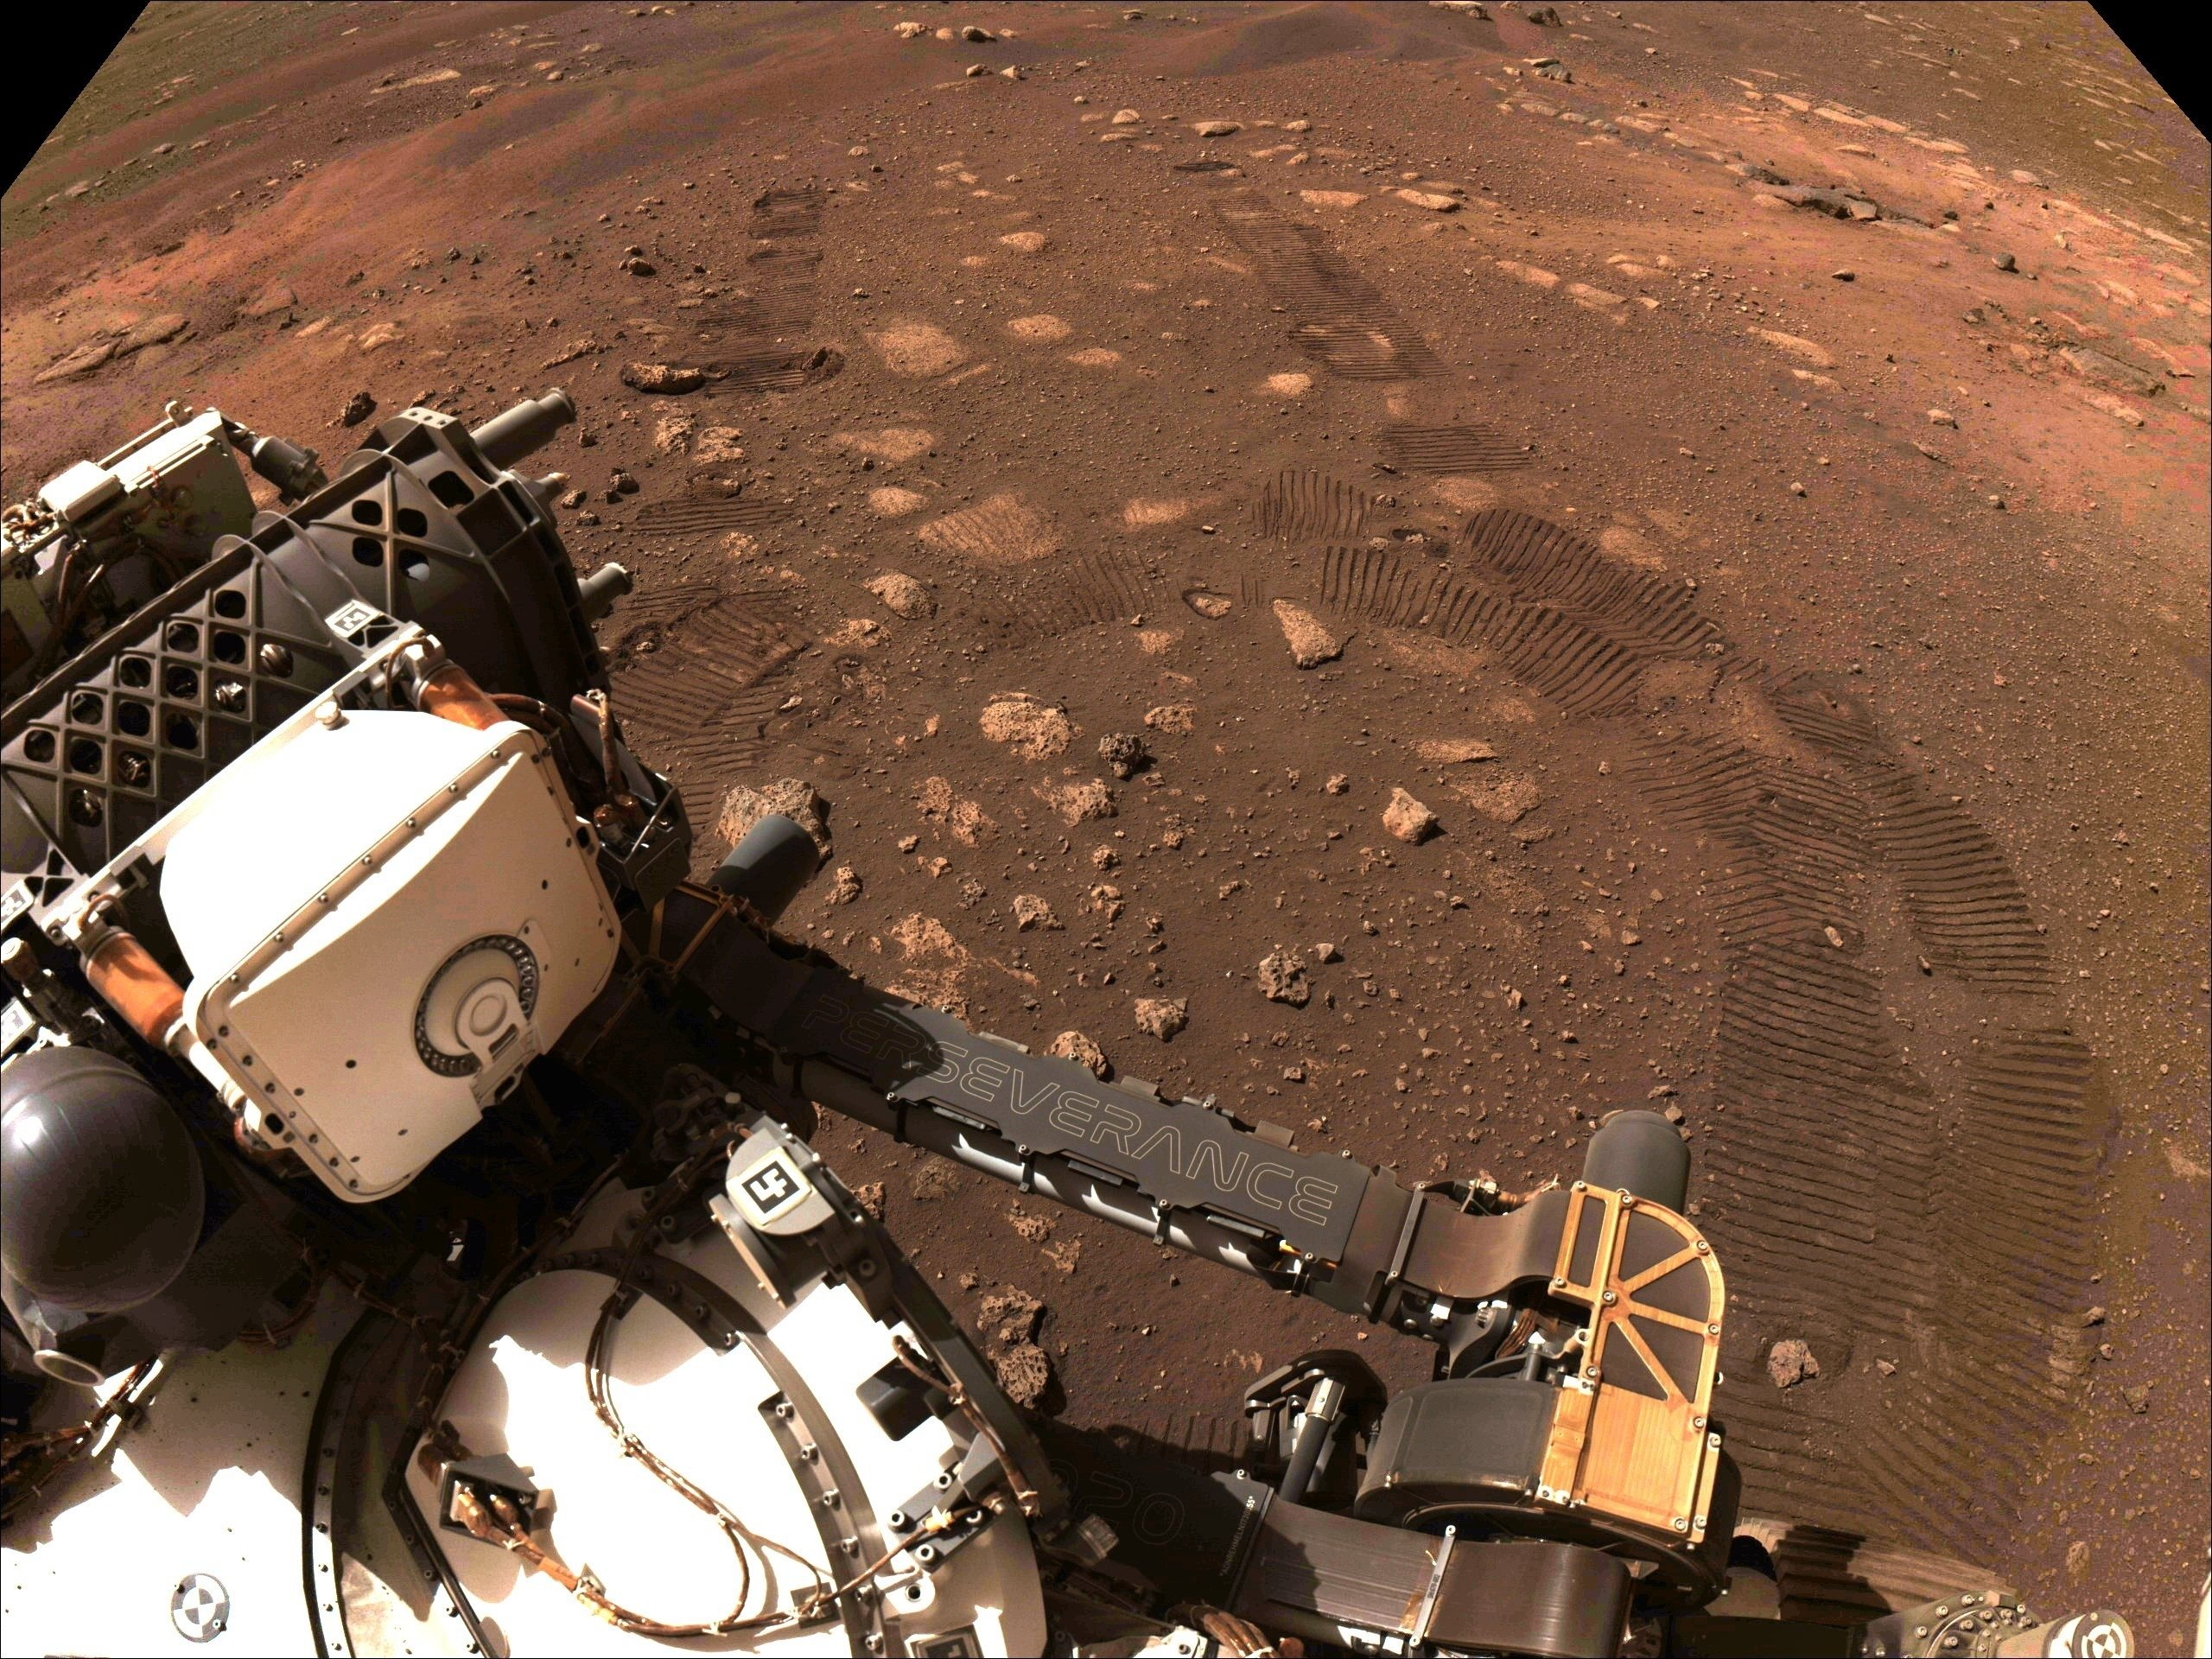 This photo made available by NASA was taken during the first drive of the Perseverance rover on Mars on Thursday, March 4, 2021. Perseverance landed on Feb. 18, 2021. (NASA/JPL-Caltech via AP)